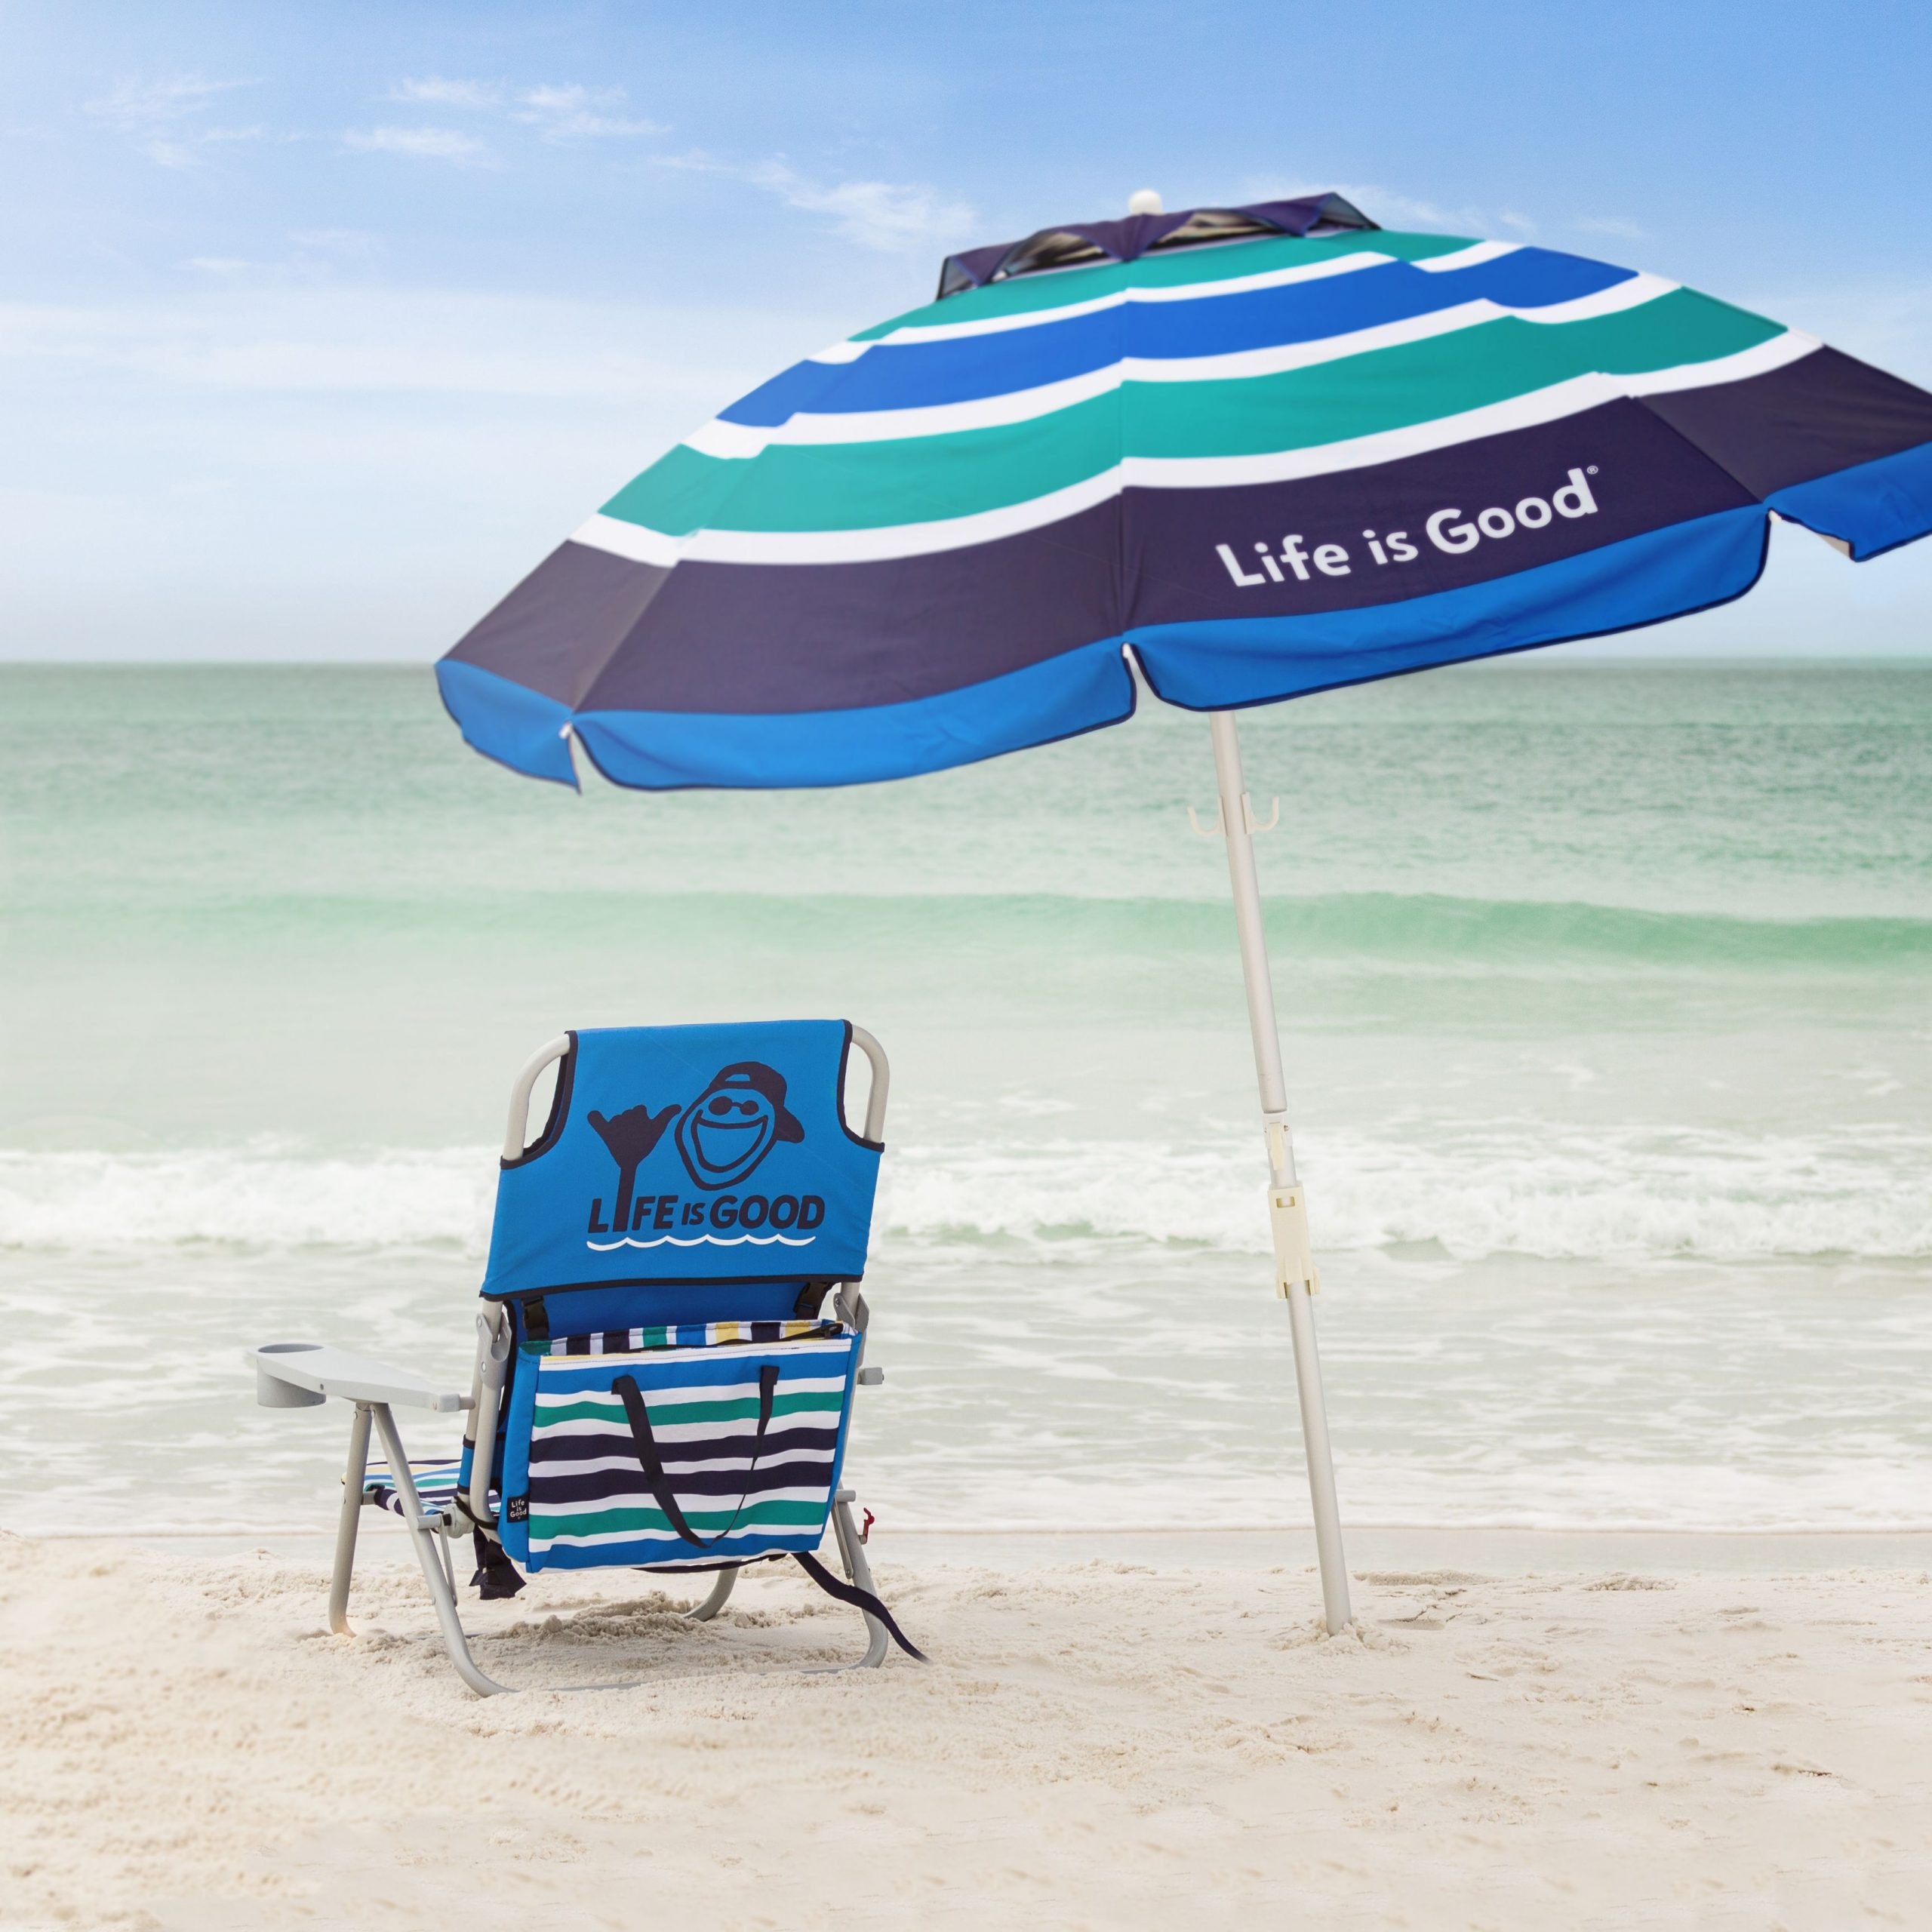 Life is Good beach chair and umbrella